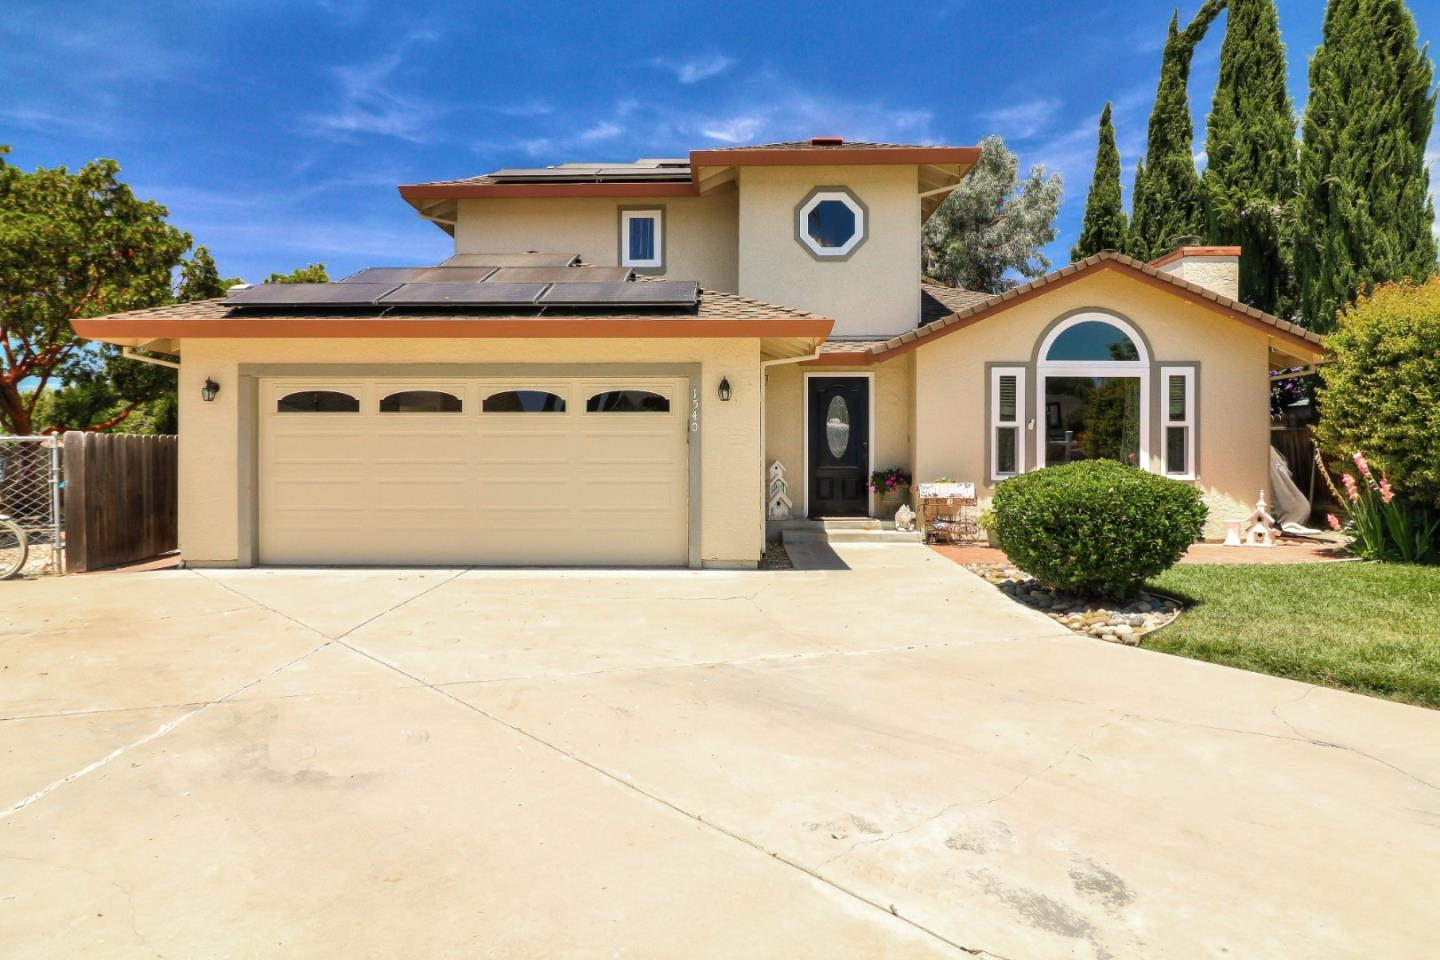 Detail Gallery Image 1 of 34 For 1540 Las Brisas Dr, Hollister, CA 95023 - 4 Beds   2/1 Baths